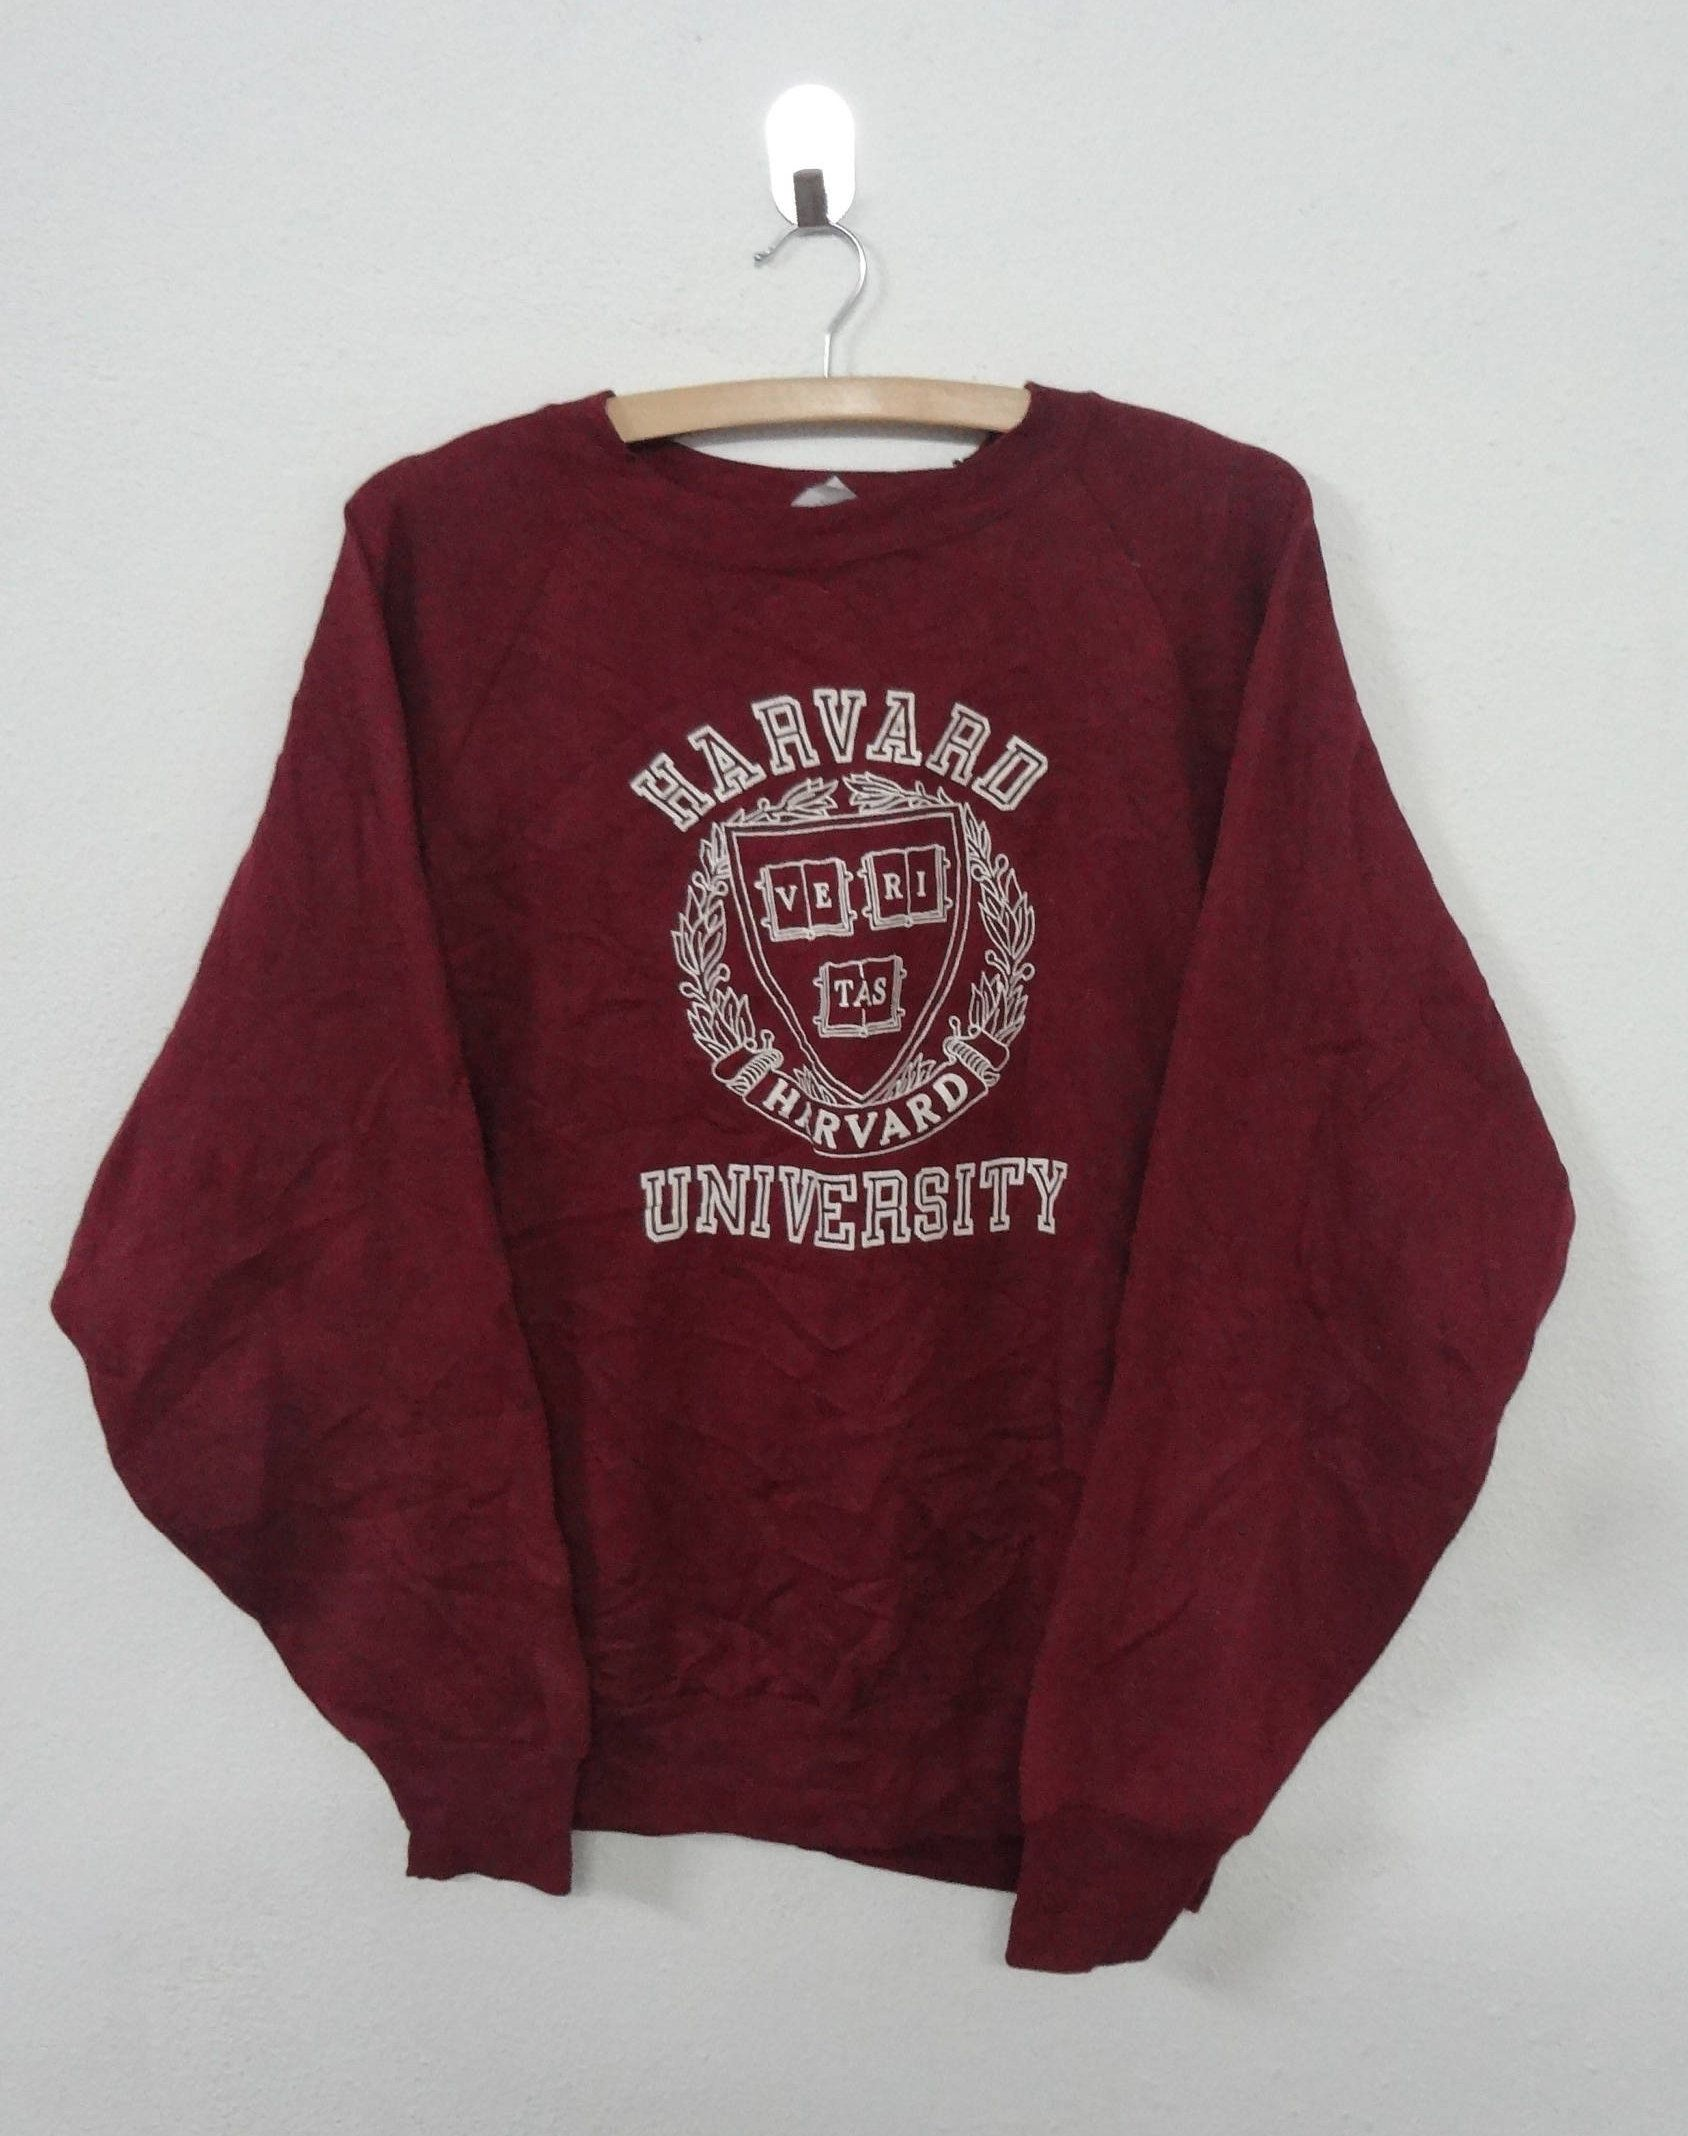 8442e8852 vintage 90s harvard university sweatshirt big logo size L Made in Usa by  NotreShop on Etsy